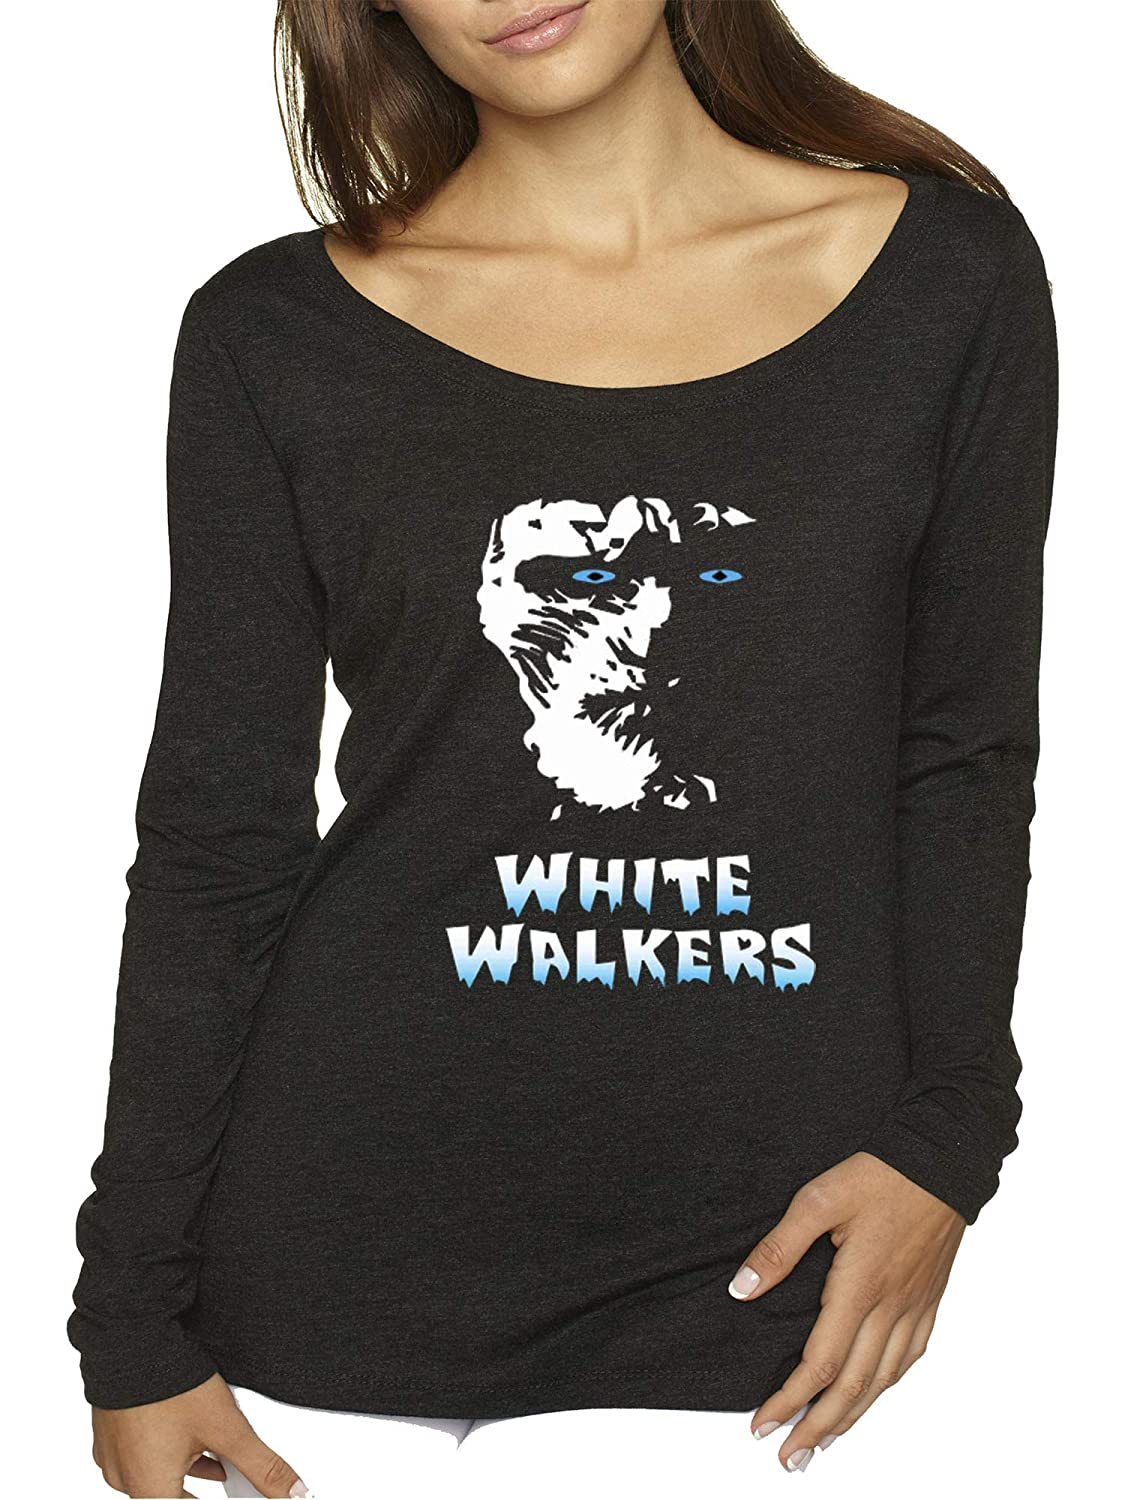 Black Trendy USA 493  Women's Long Sleeve TShirt White Walkers Game of Thrones